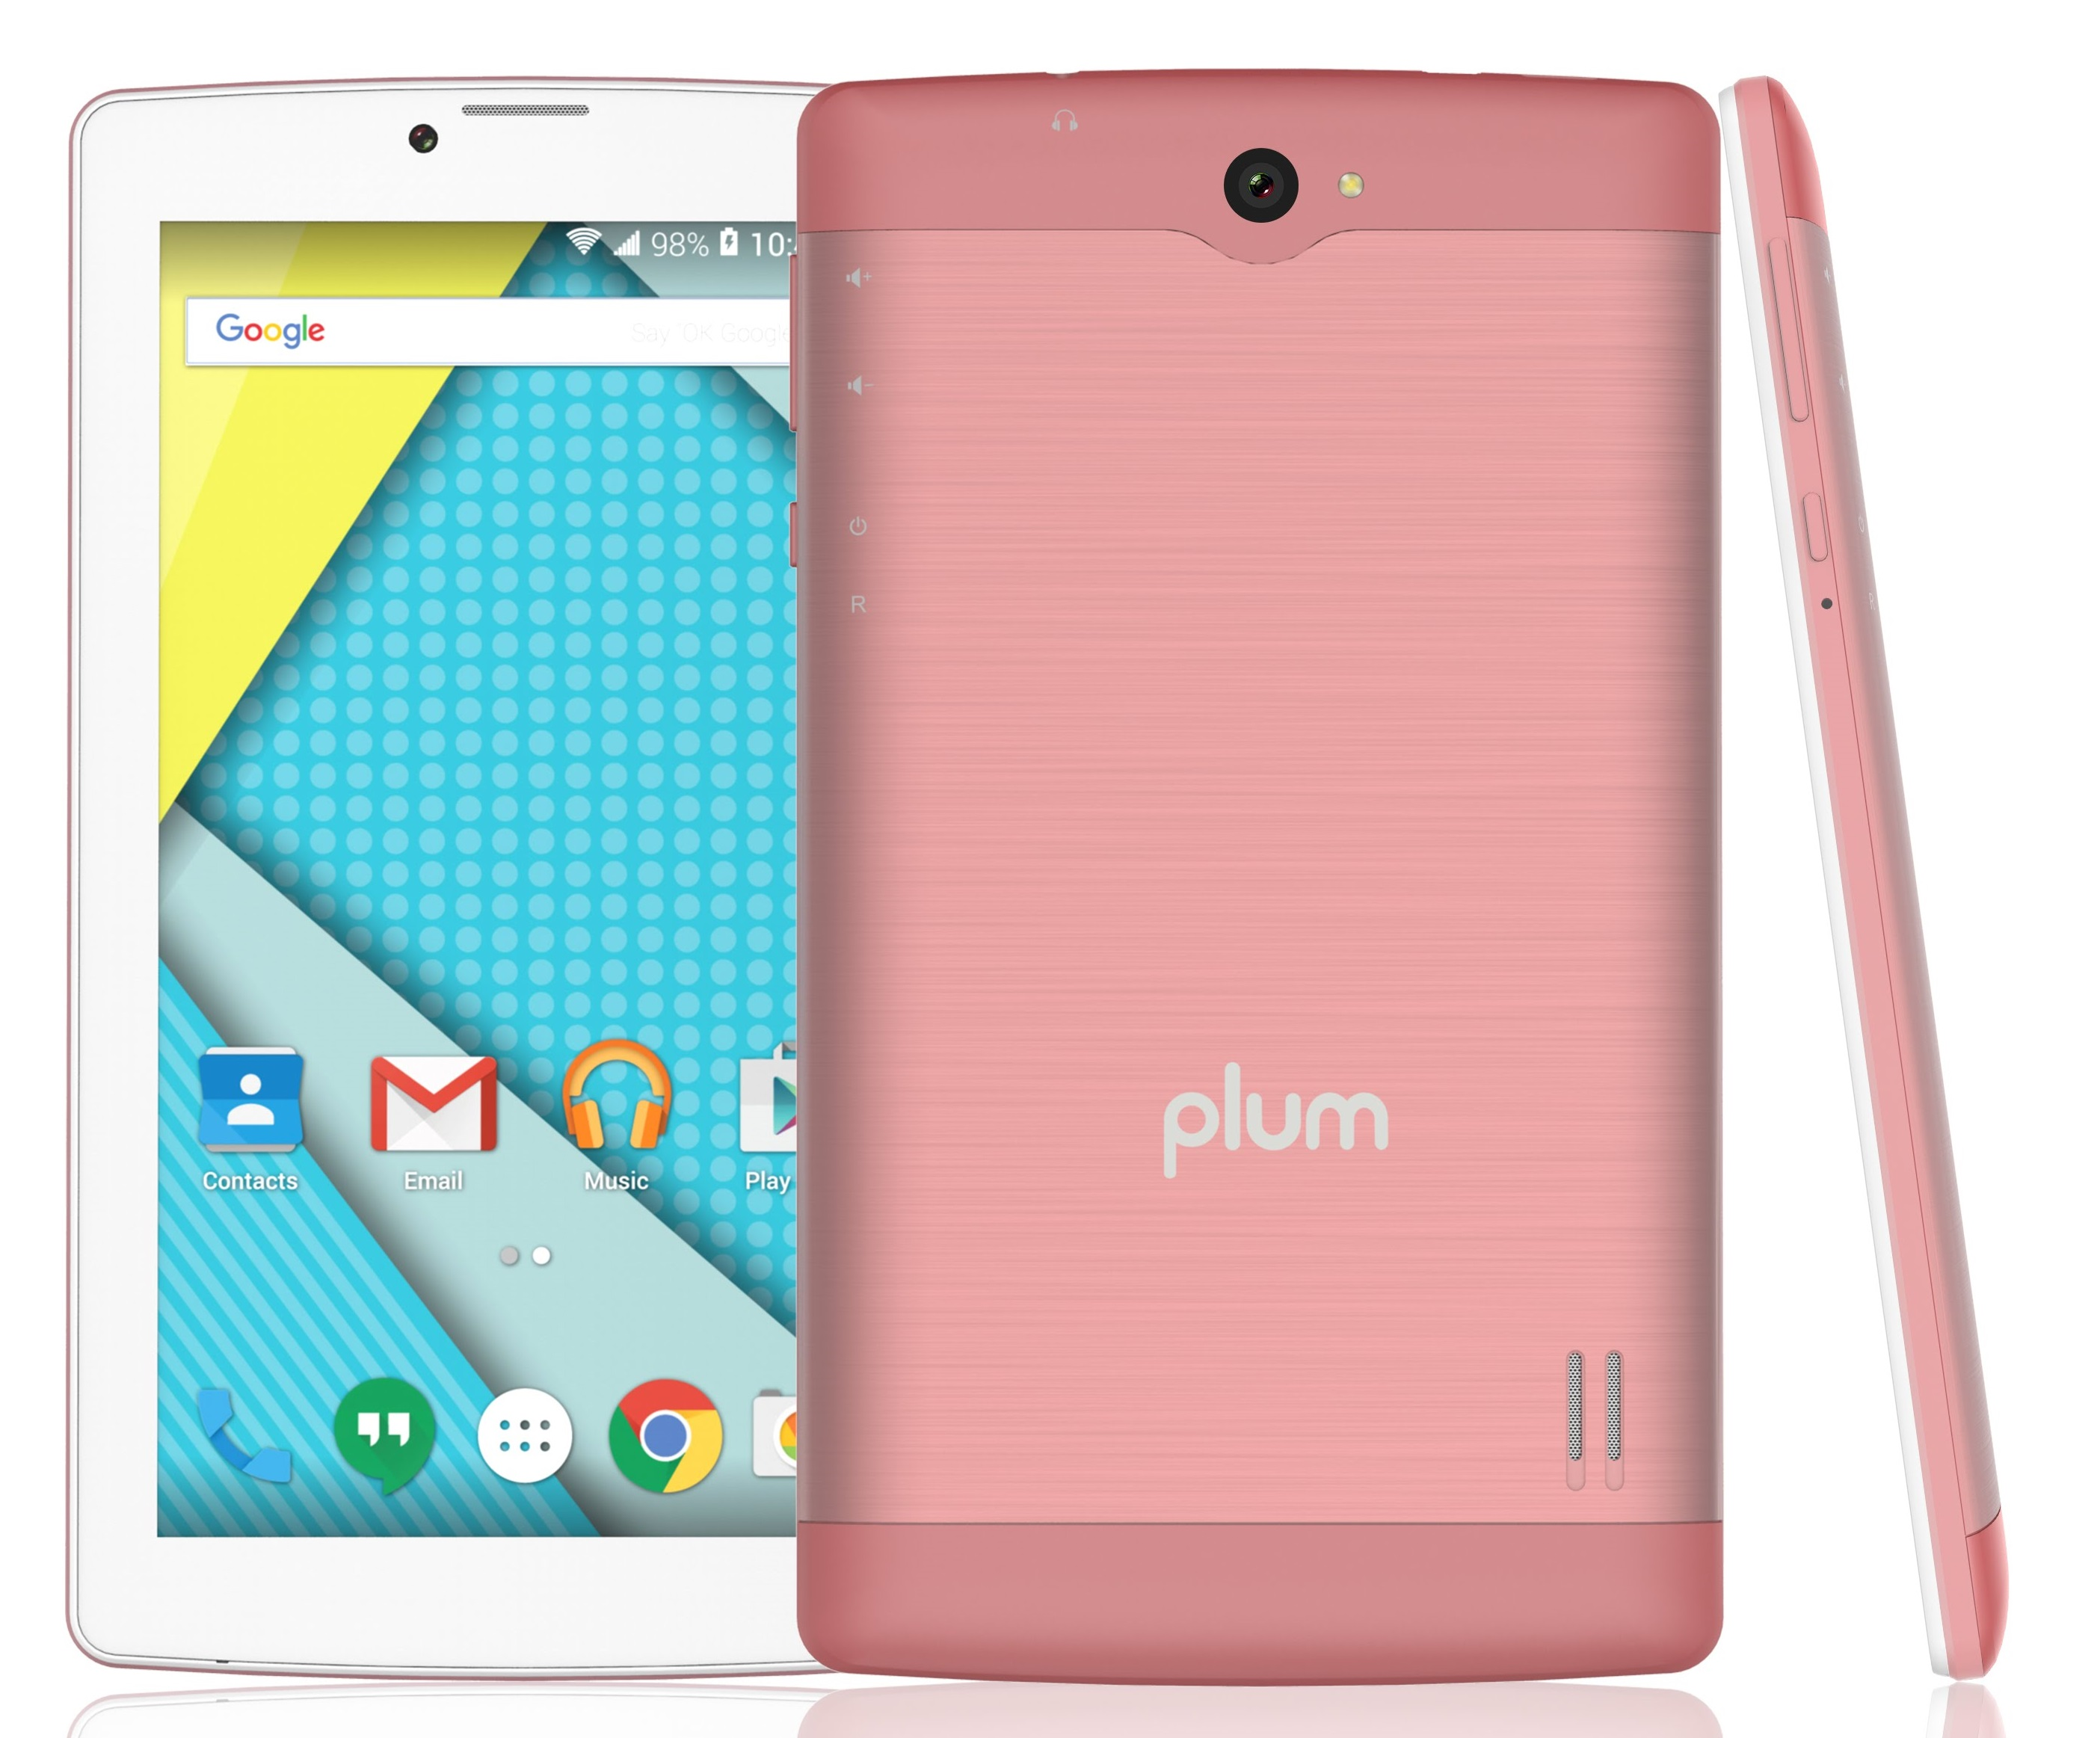 Plum Optimax 12 - Tablet + Phone Phablet 4G GSM Unlocked Android...